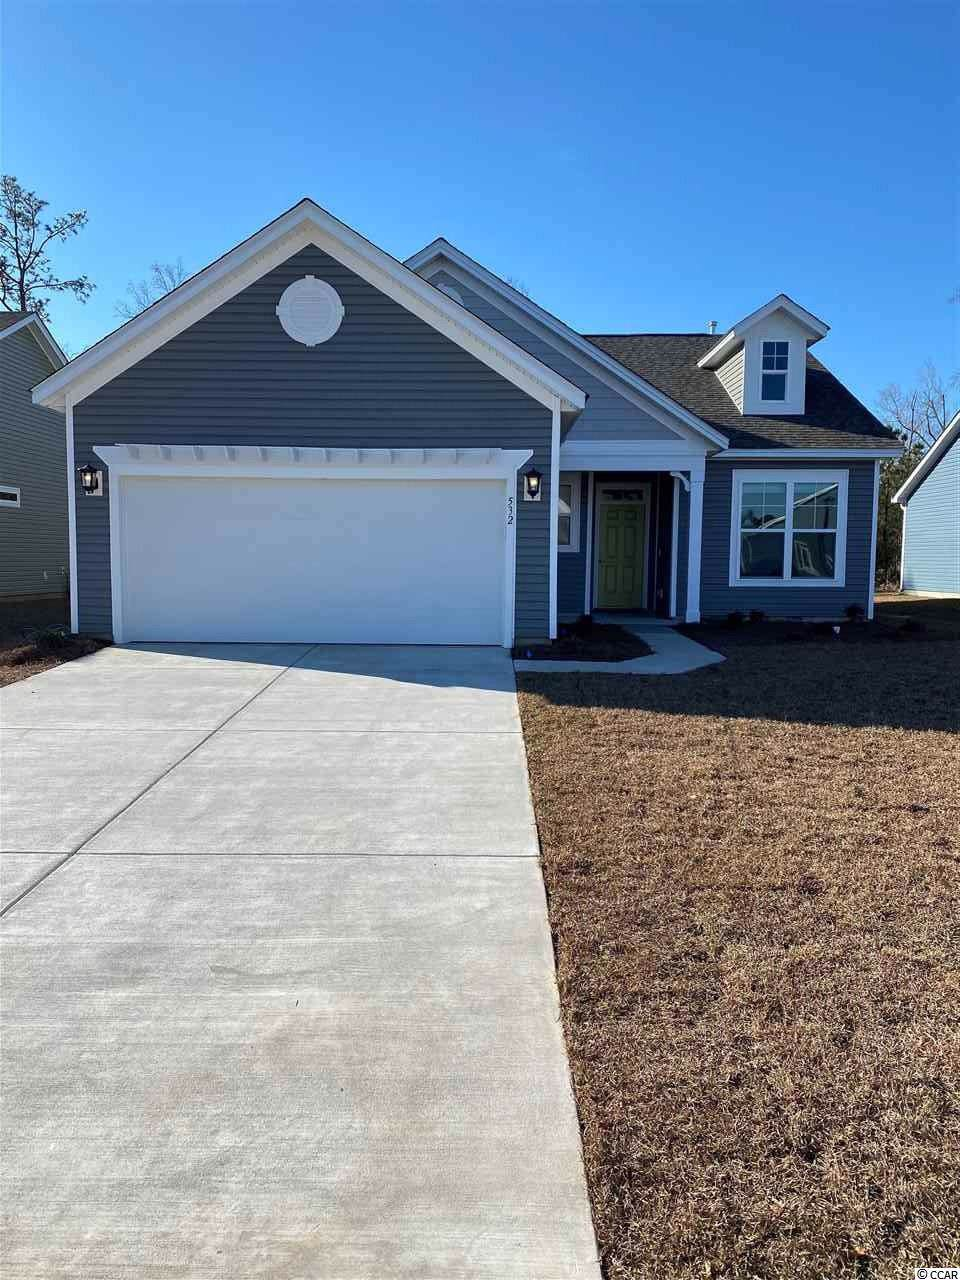 532 Oyster Dr. - Photo 1